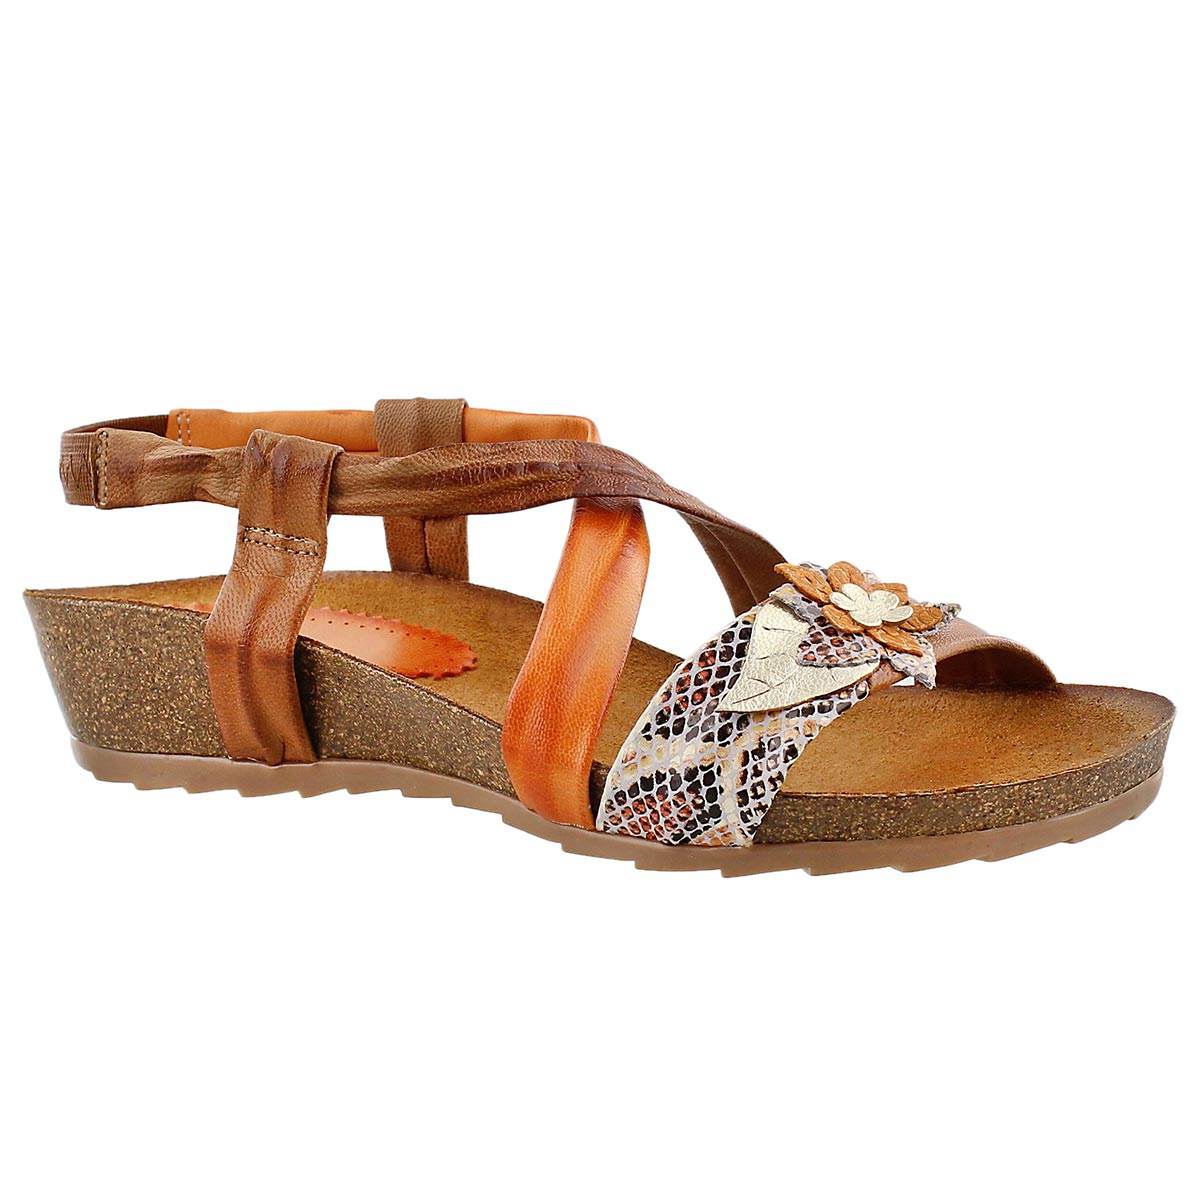 Women's MADISON tan casual wedge sandals